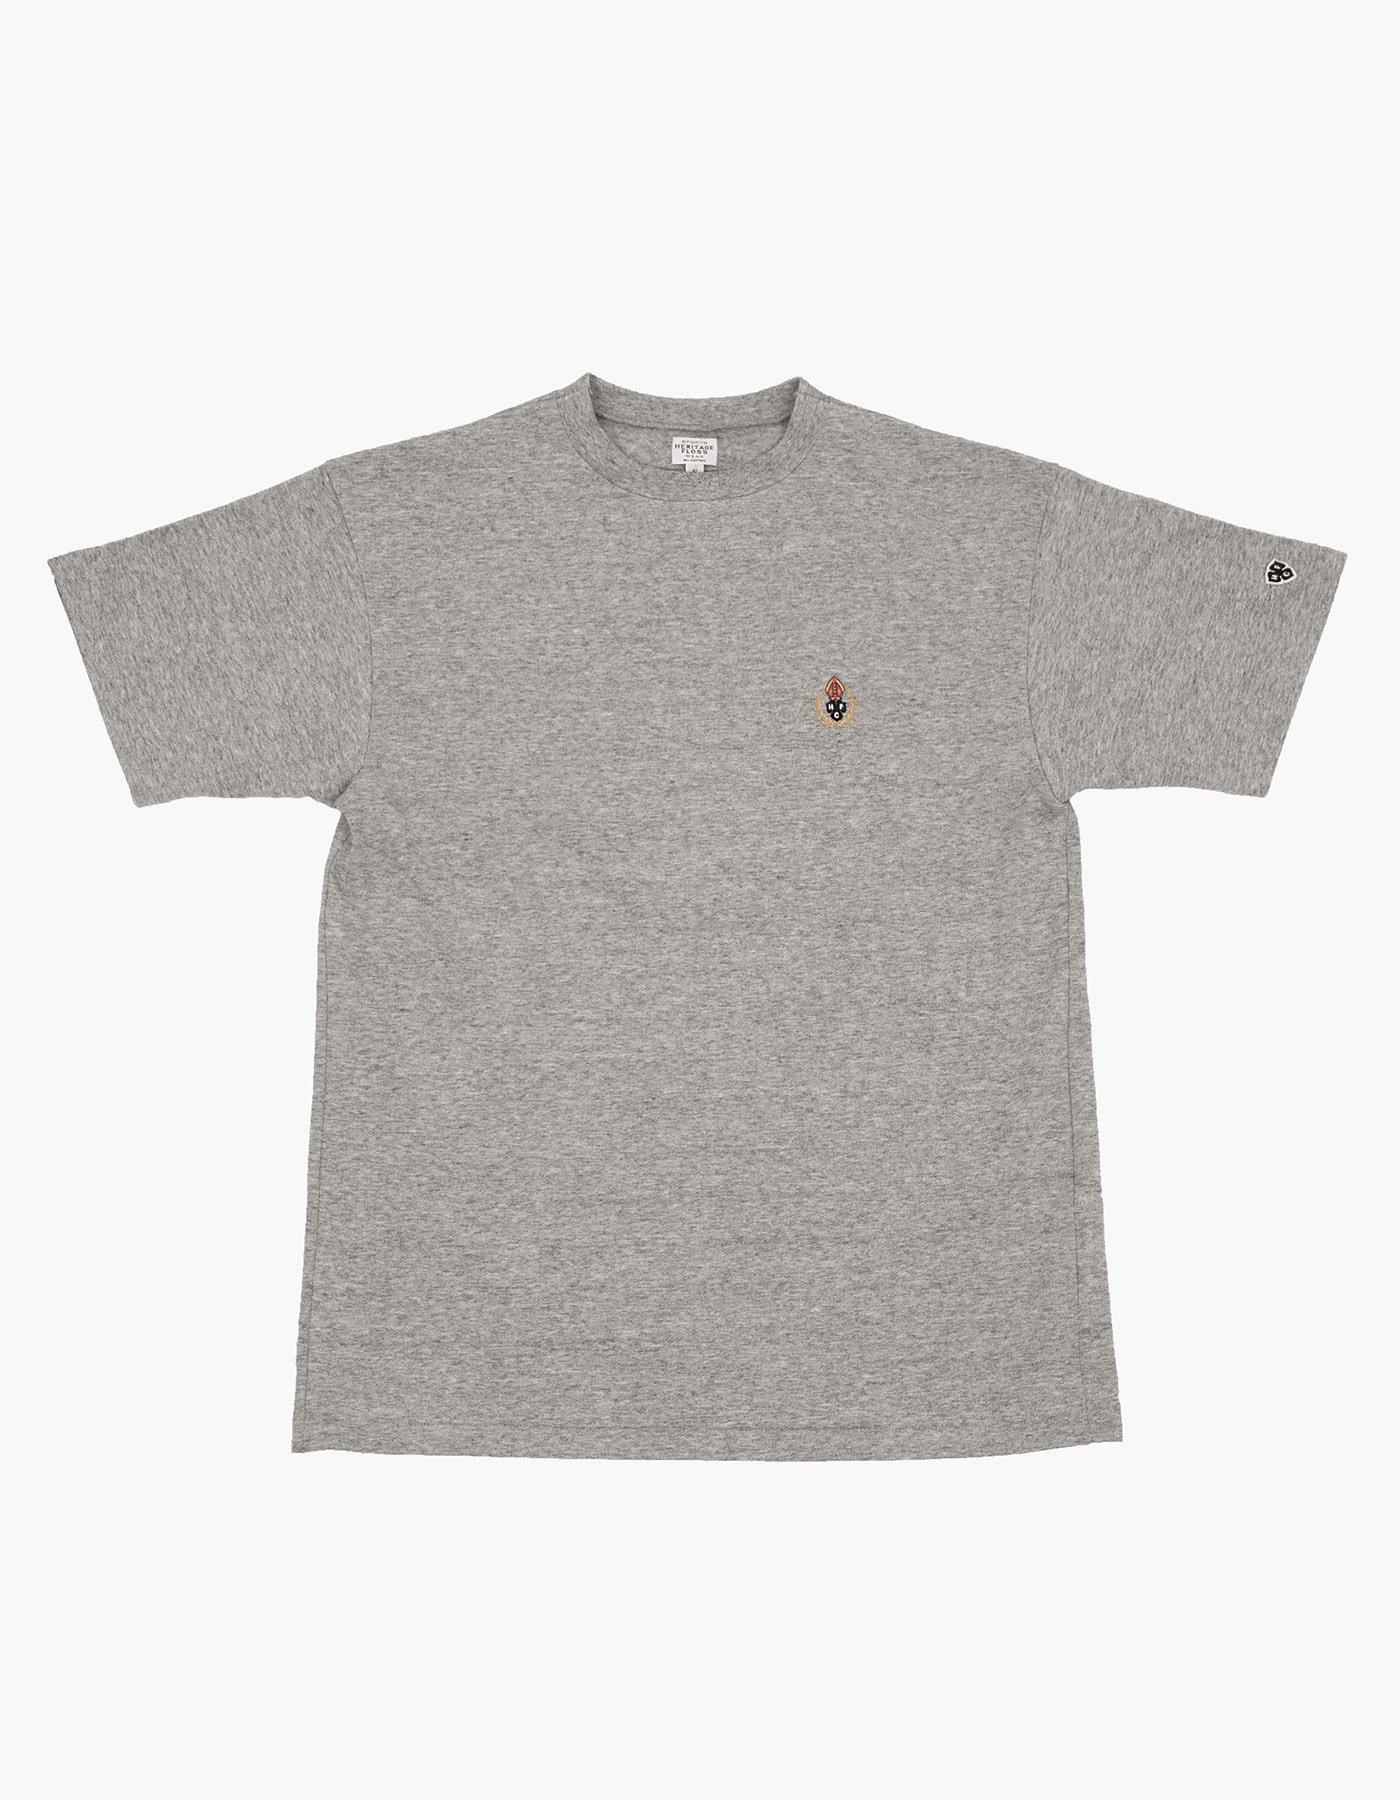 HFC CREST 10S COMPACT YARN T-SHIRT / M.GREY